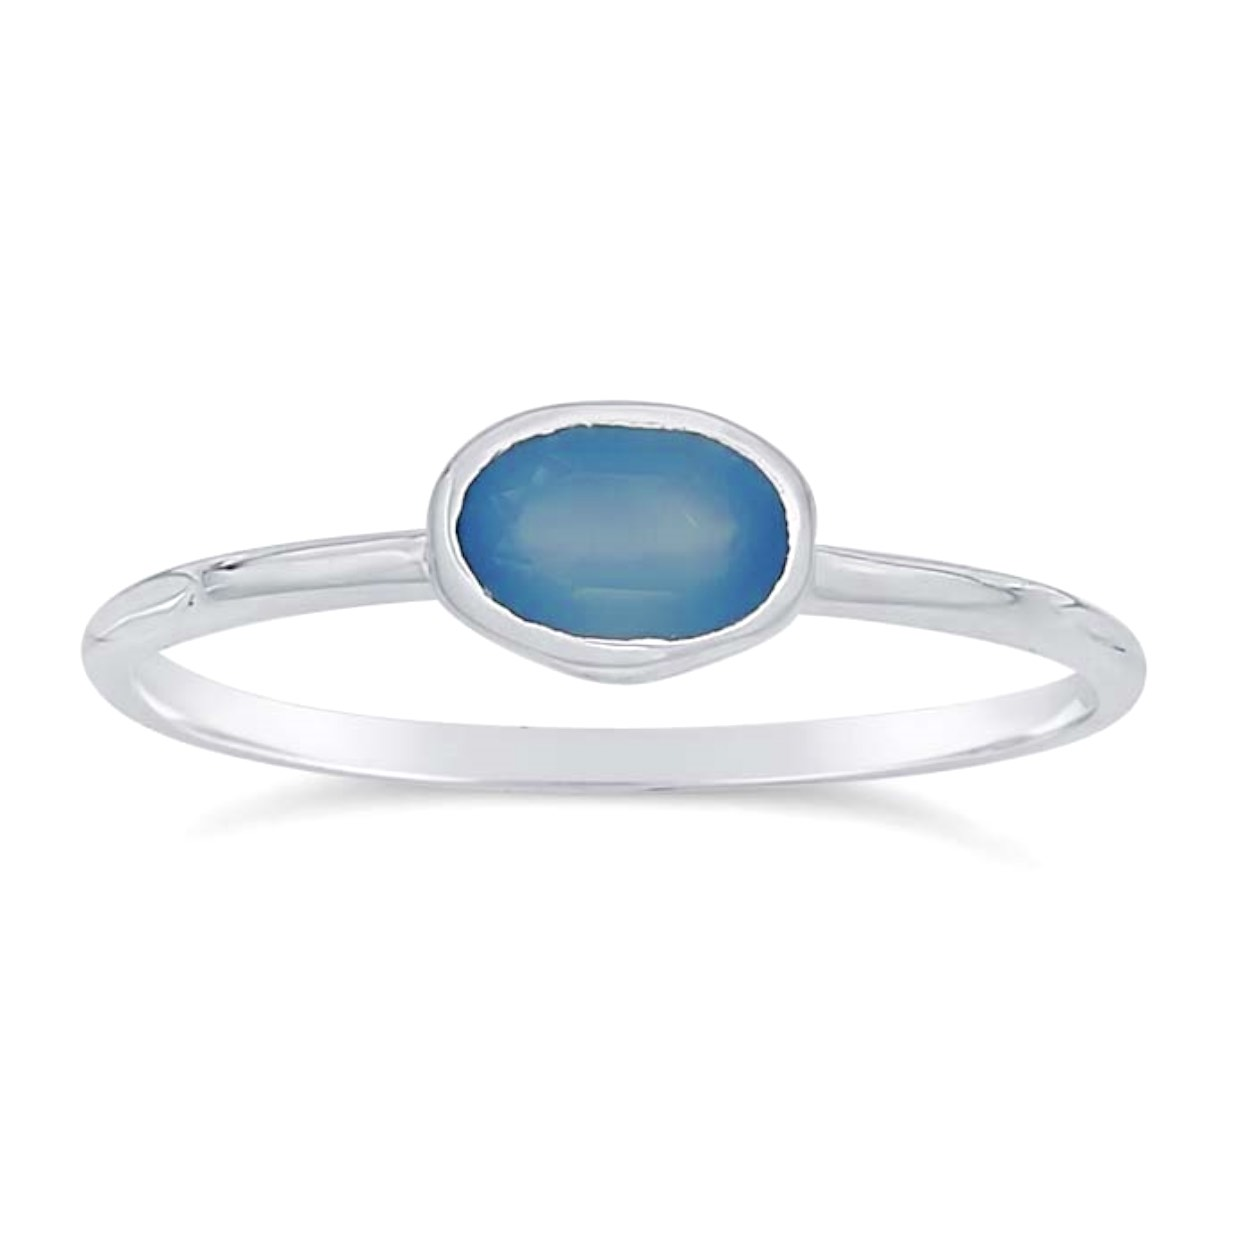 Blue Chalcedony Ring in Sterling Silver, #6392 (6) by